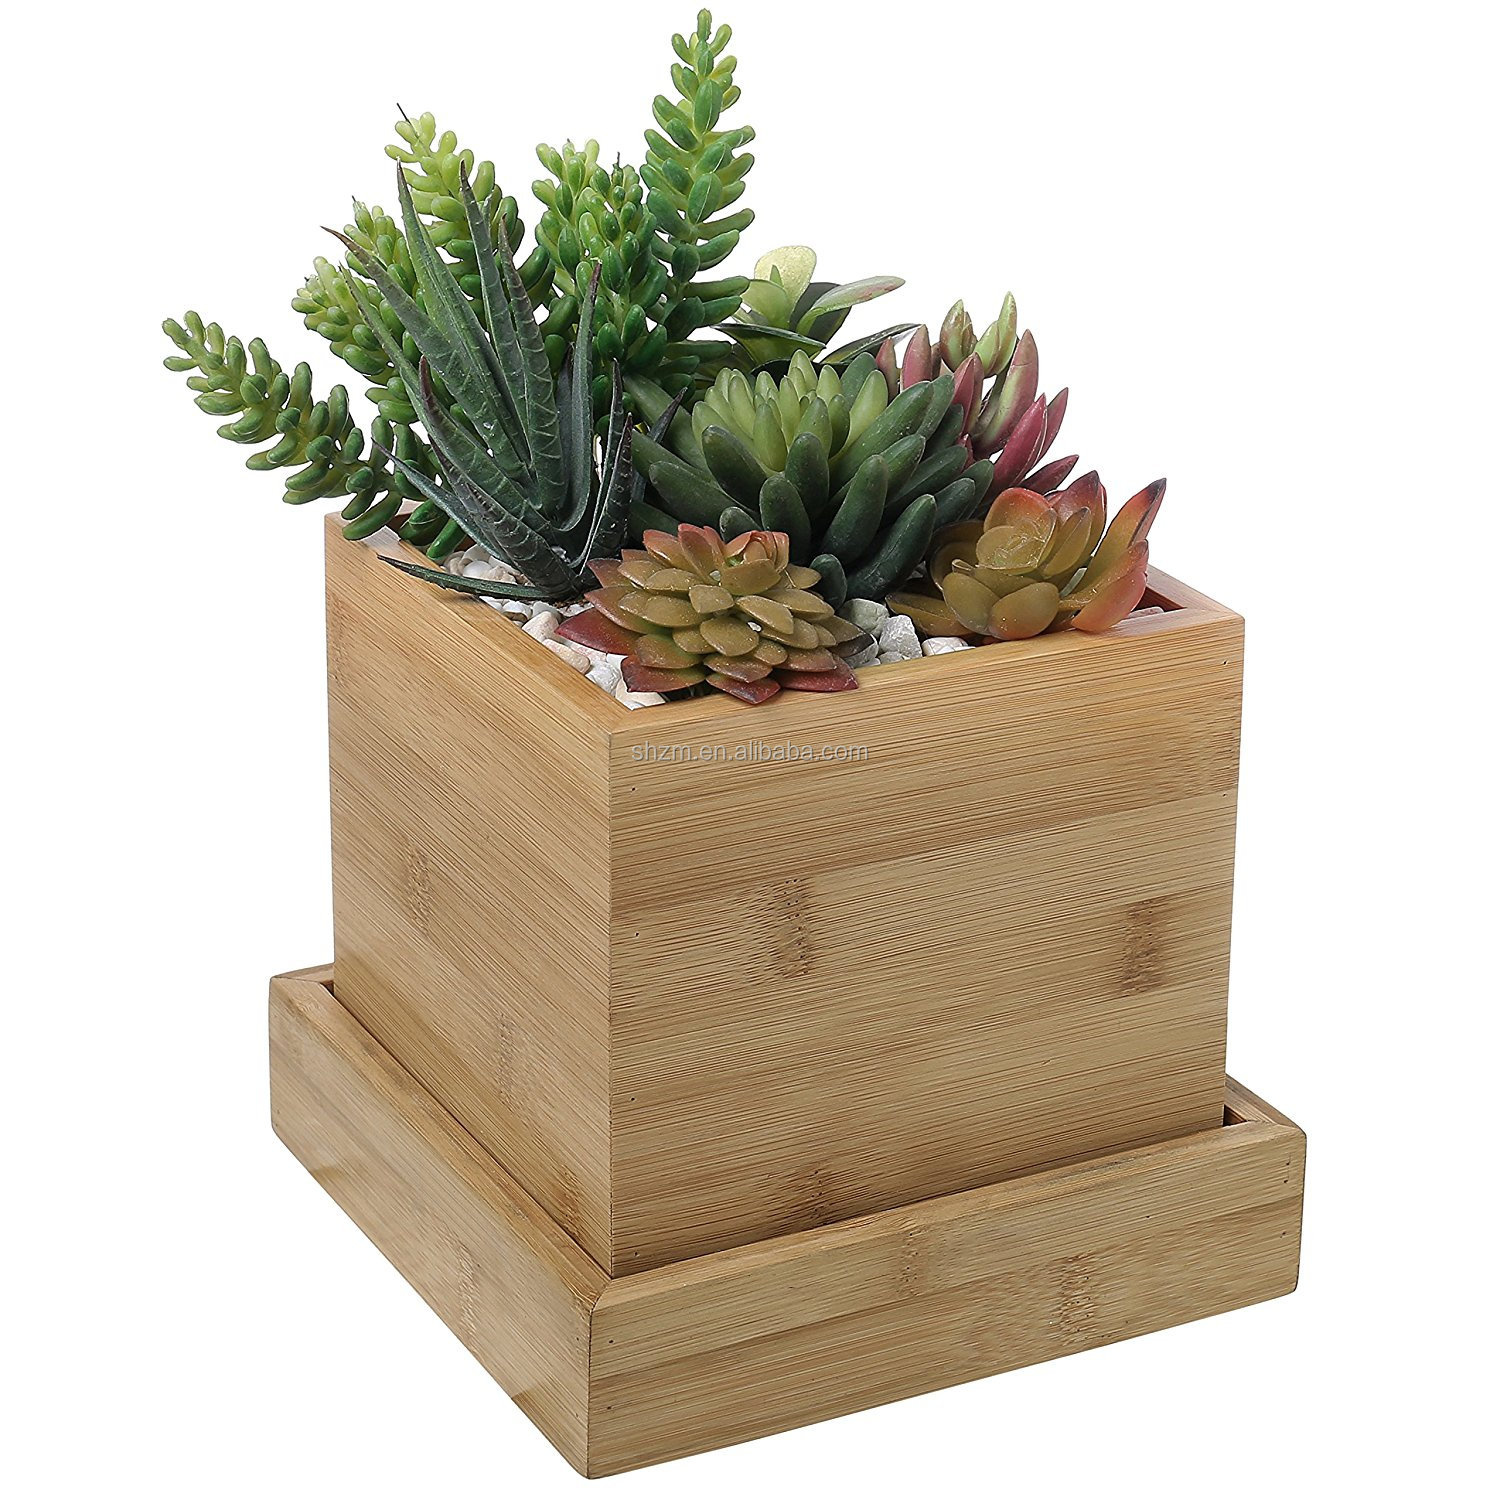 Cactus Planting Pots Wholesale Square Design Succulent Plant Pot Cactus Plant Pot With Bamboo Tray Buy Flower Pot Bamboo Pots Unique Plant Pots Product On Alibaba